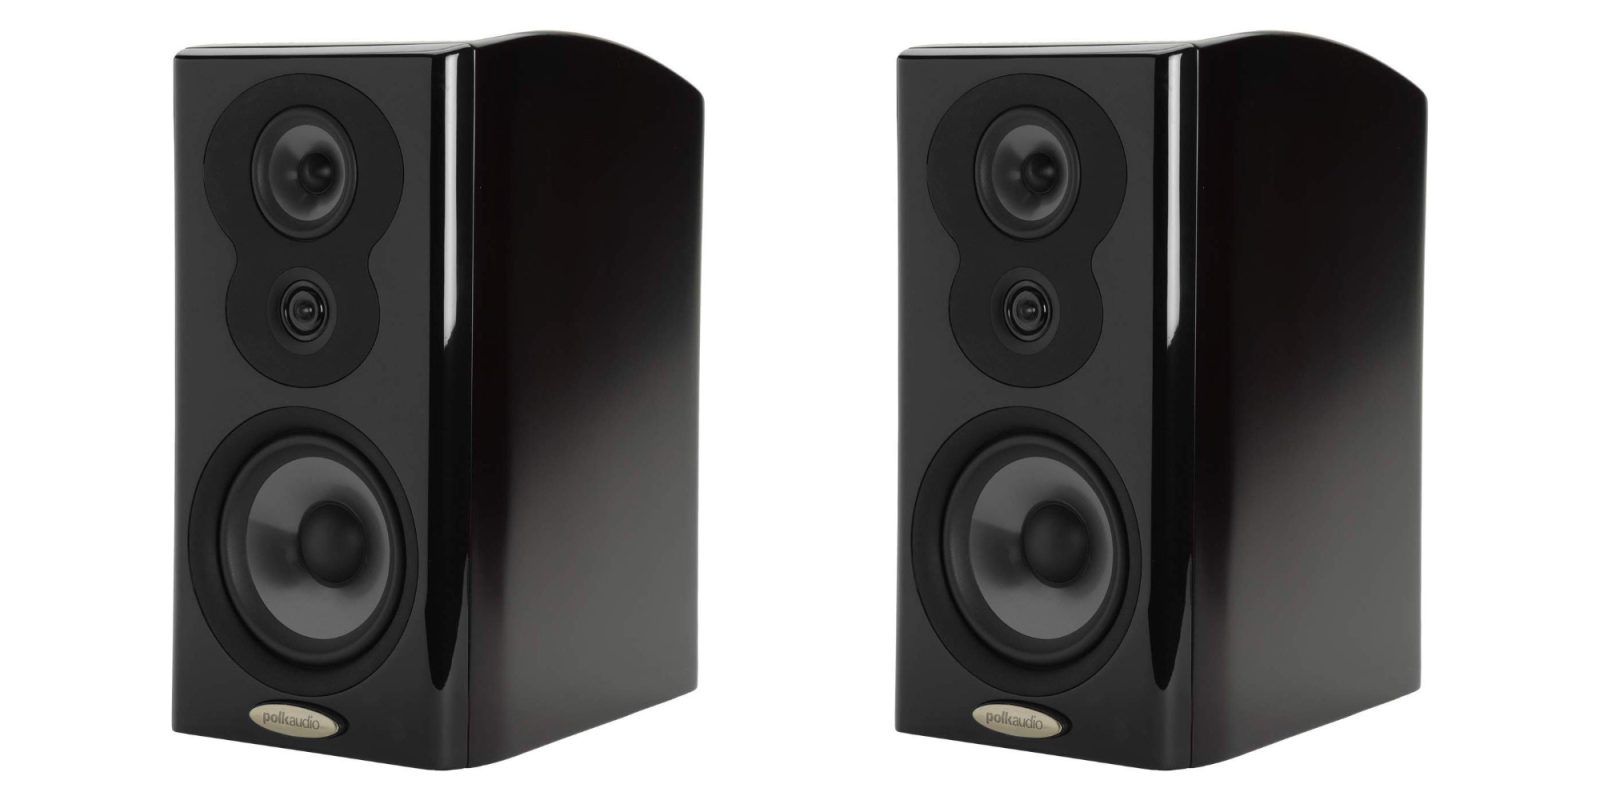 Save up to $1,049 on a pair of high-end Polk Audio Bookshelf Speakers at $449